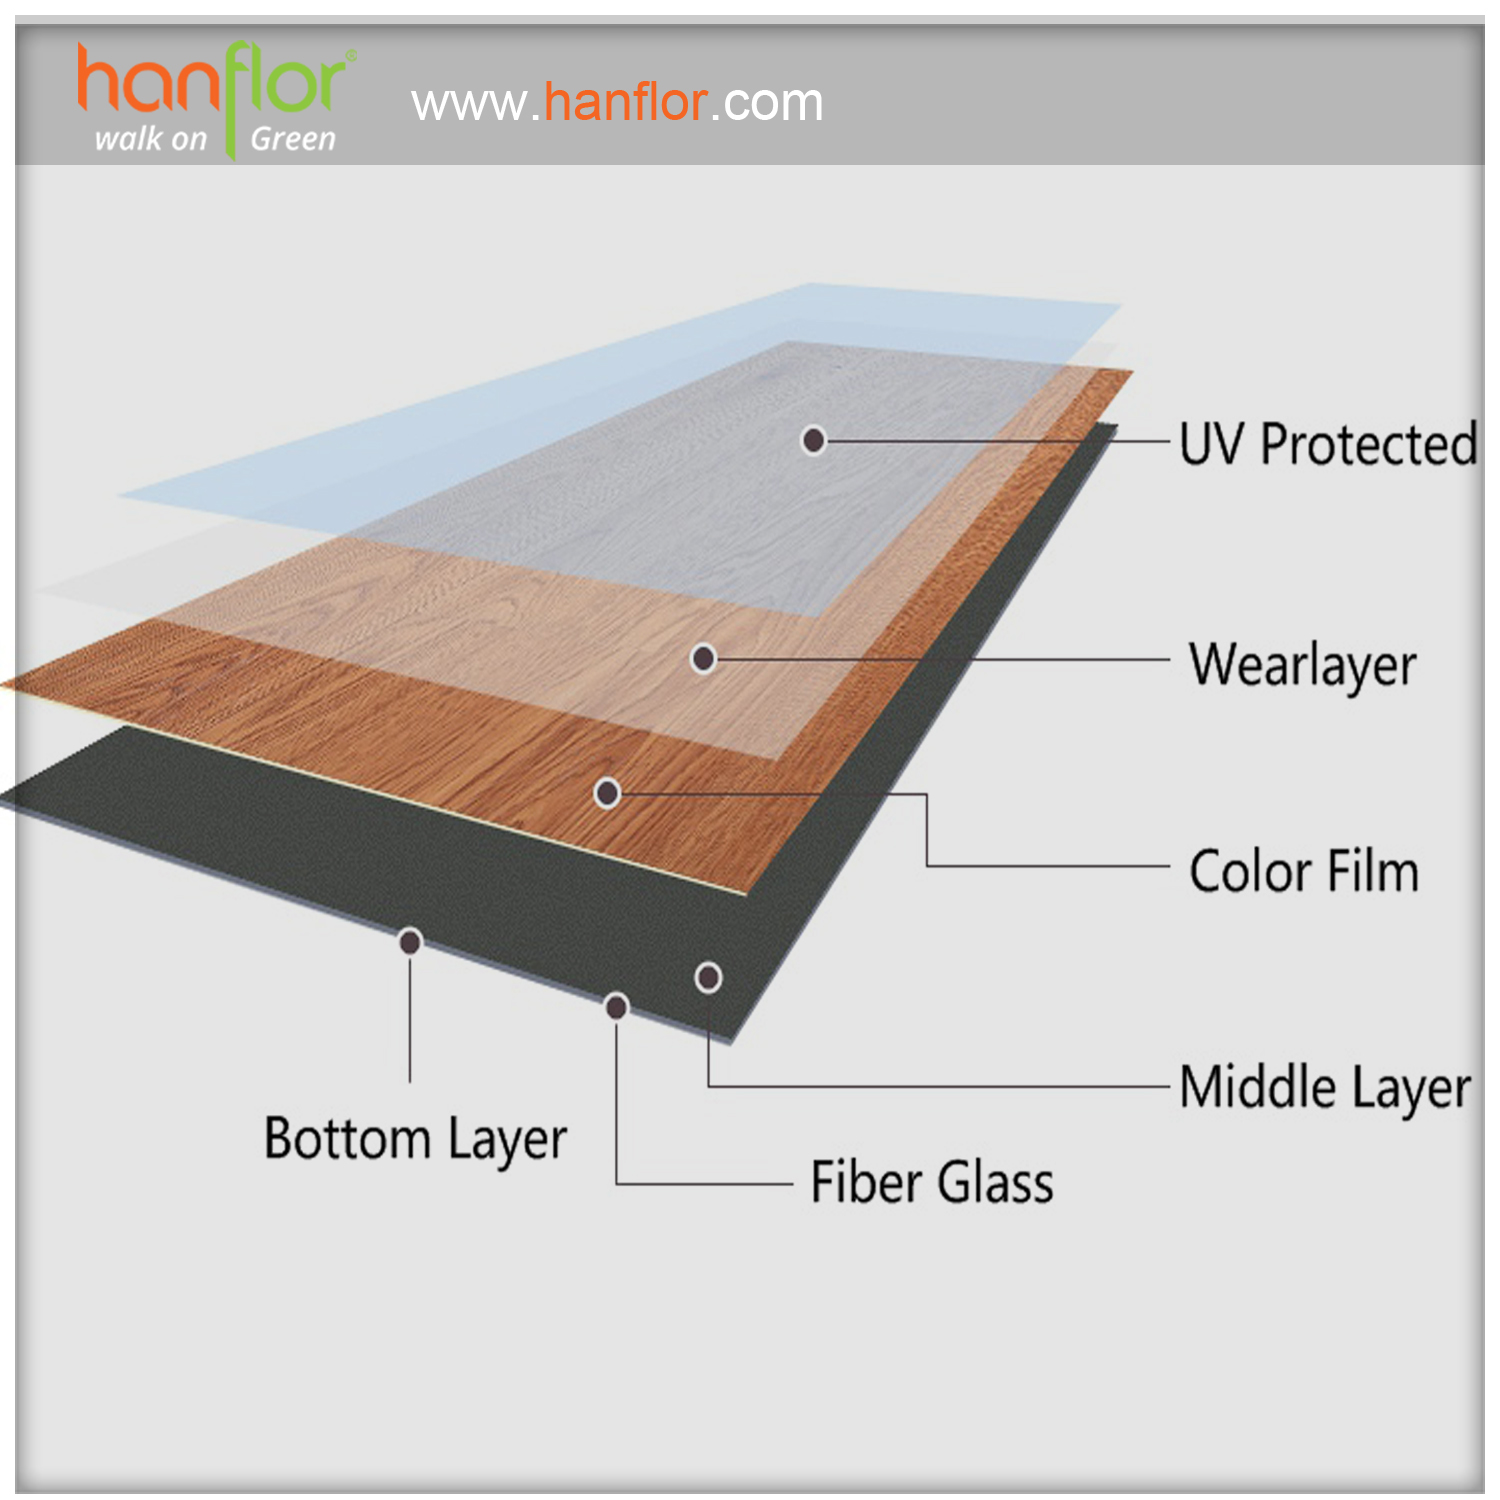 4.product Structure: UV protected, UV coating, UV, wearlayer, wear layer, wearlayers, color flim, Middle layer, fiber glass, bottom layer, day back, pvc flooring with above structure, make sure the quality is good. plastic floor,pvc floor, Vinyl floor, plastic flooring, pvc flooring, Vinyl flooring, pvc plank, vinyl plank, pvc tile, vinyl tile, click vinyl flooring, interlocking vinyl flooring, unilin click flooring, unilin click vinyl flooring, click pvc flooring, interlocking pvc flooring, unilin click vinyl flooring, unilin click pvc flooring